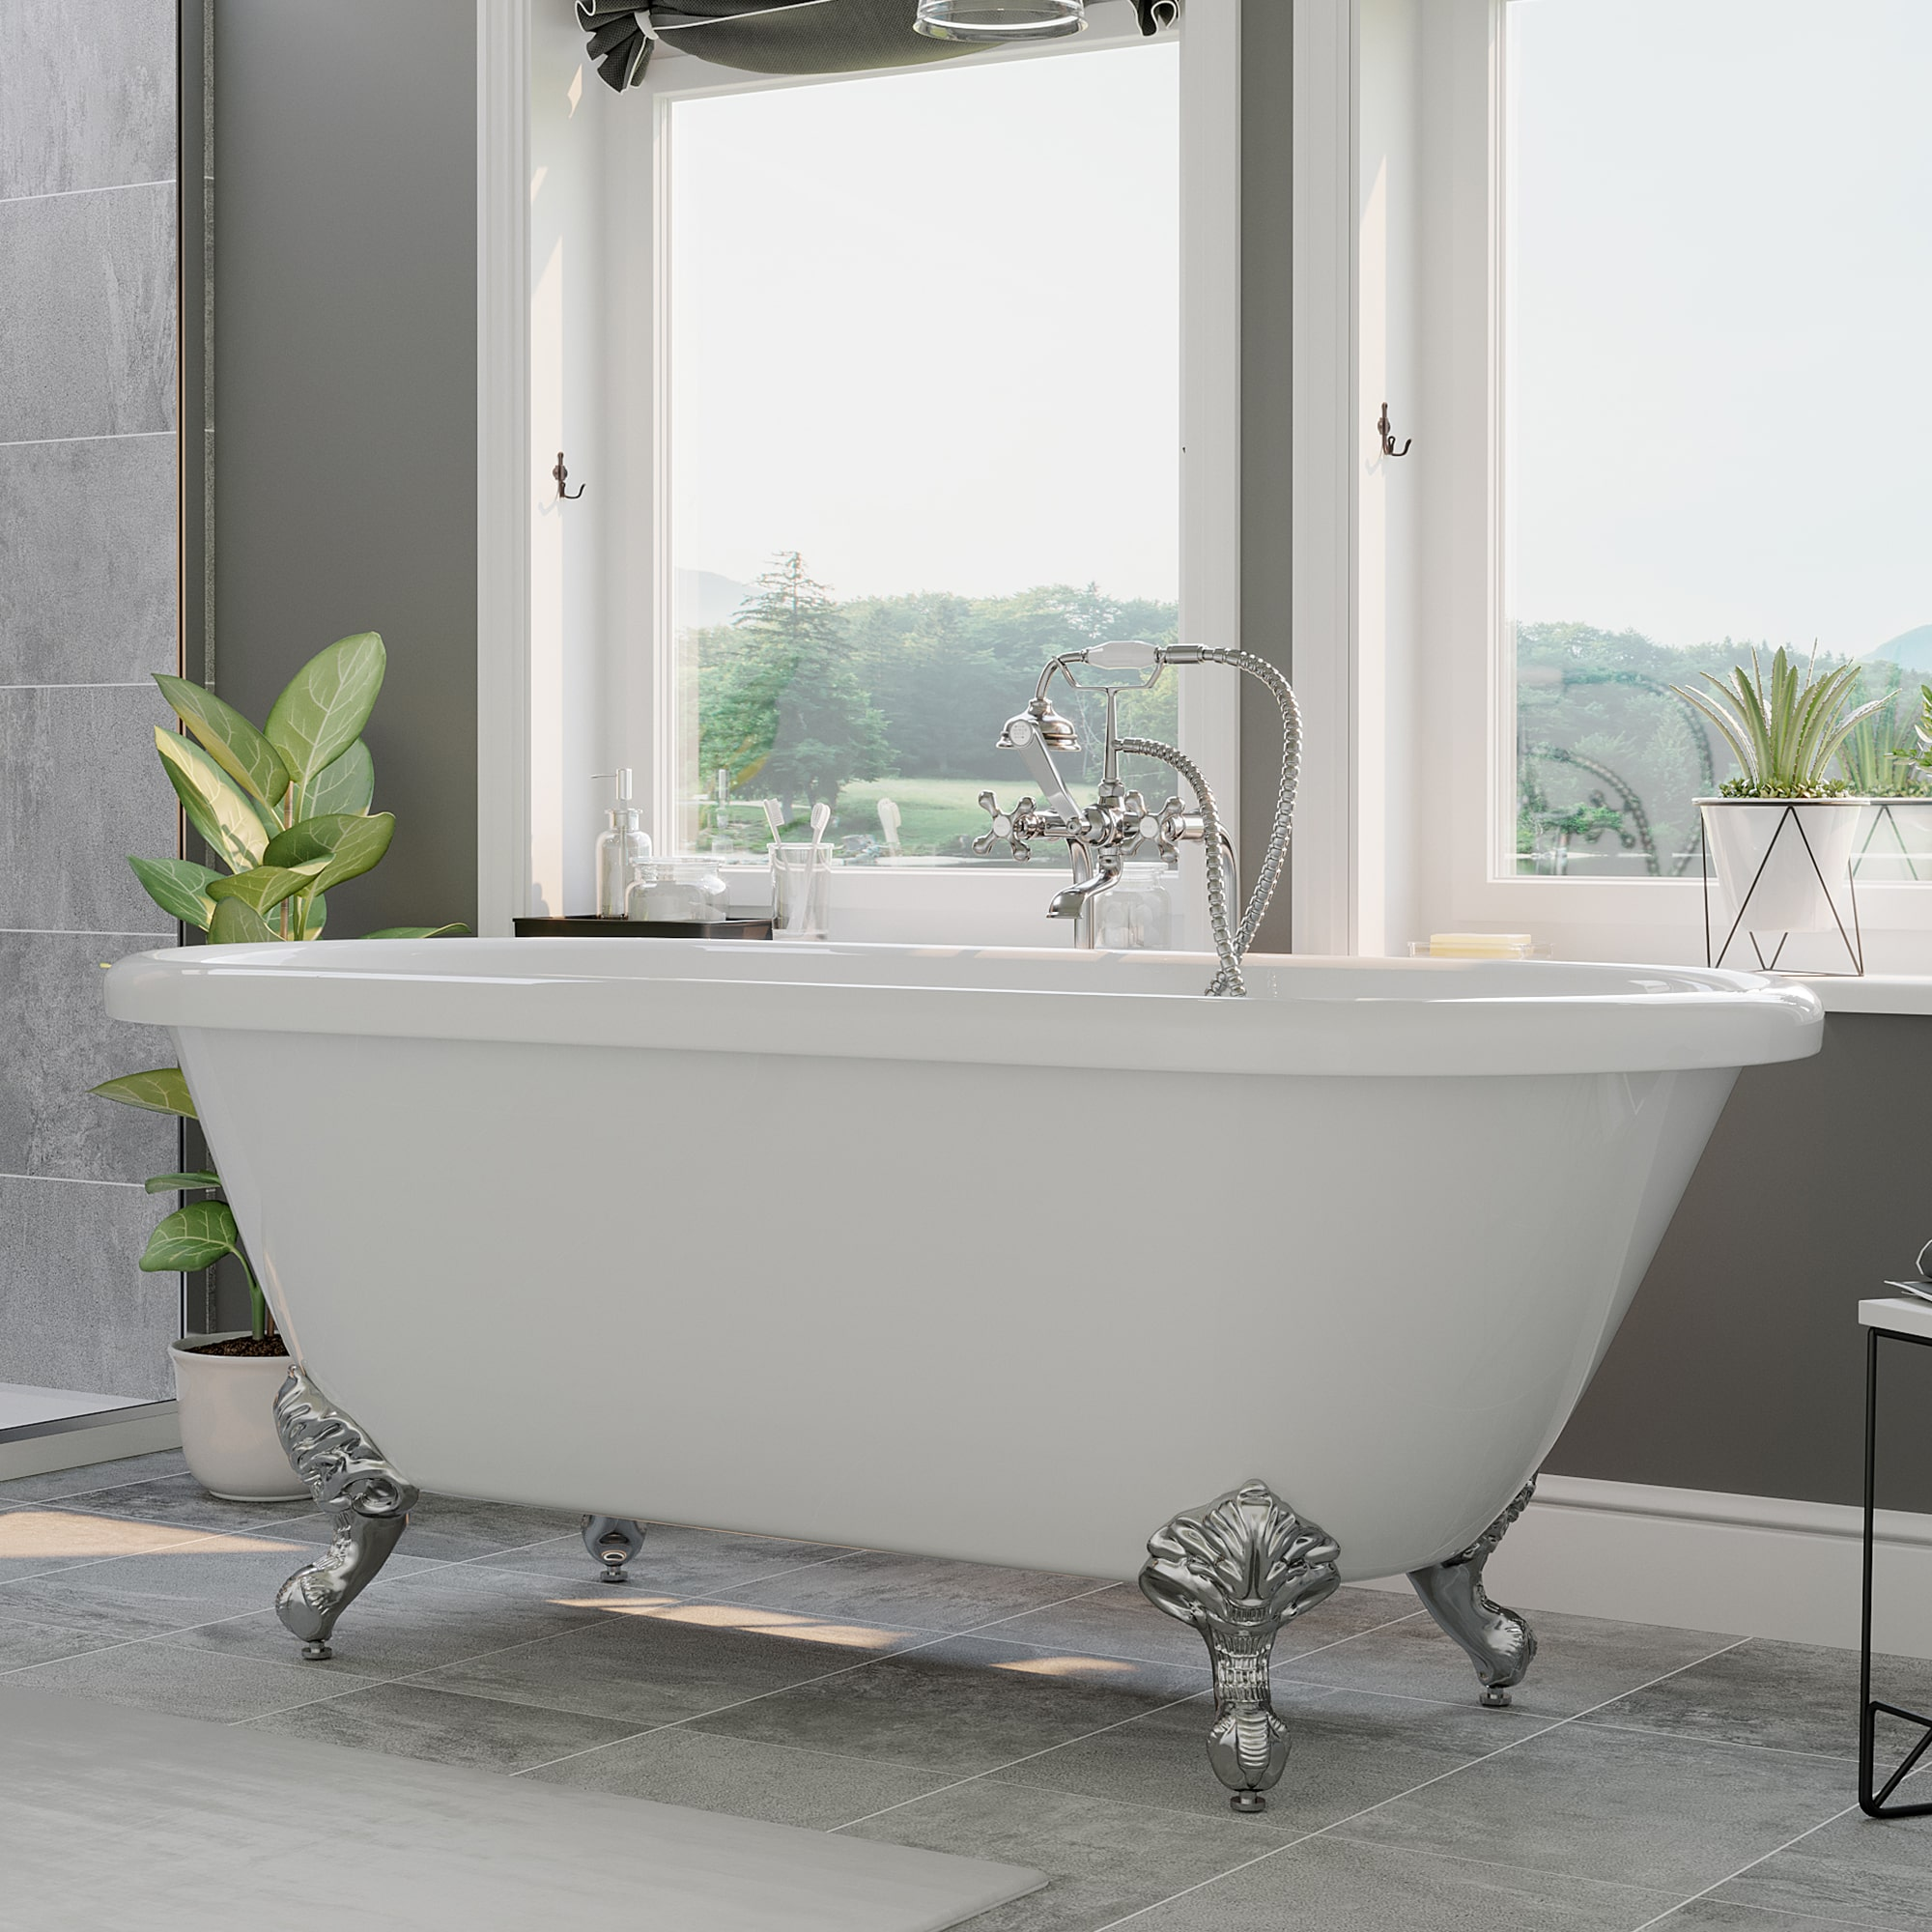 double ended, clawfoot tub,